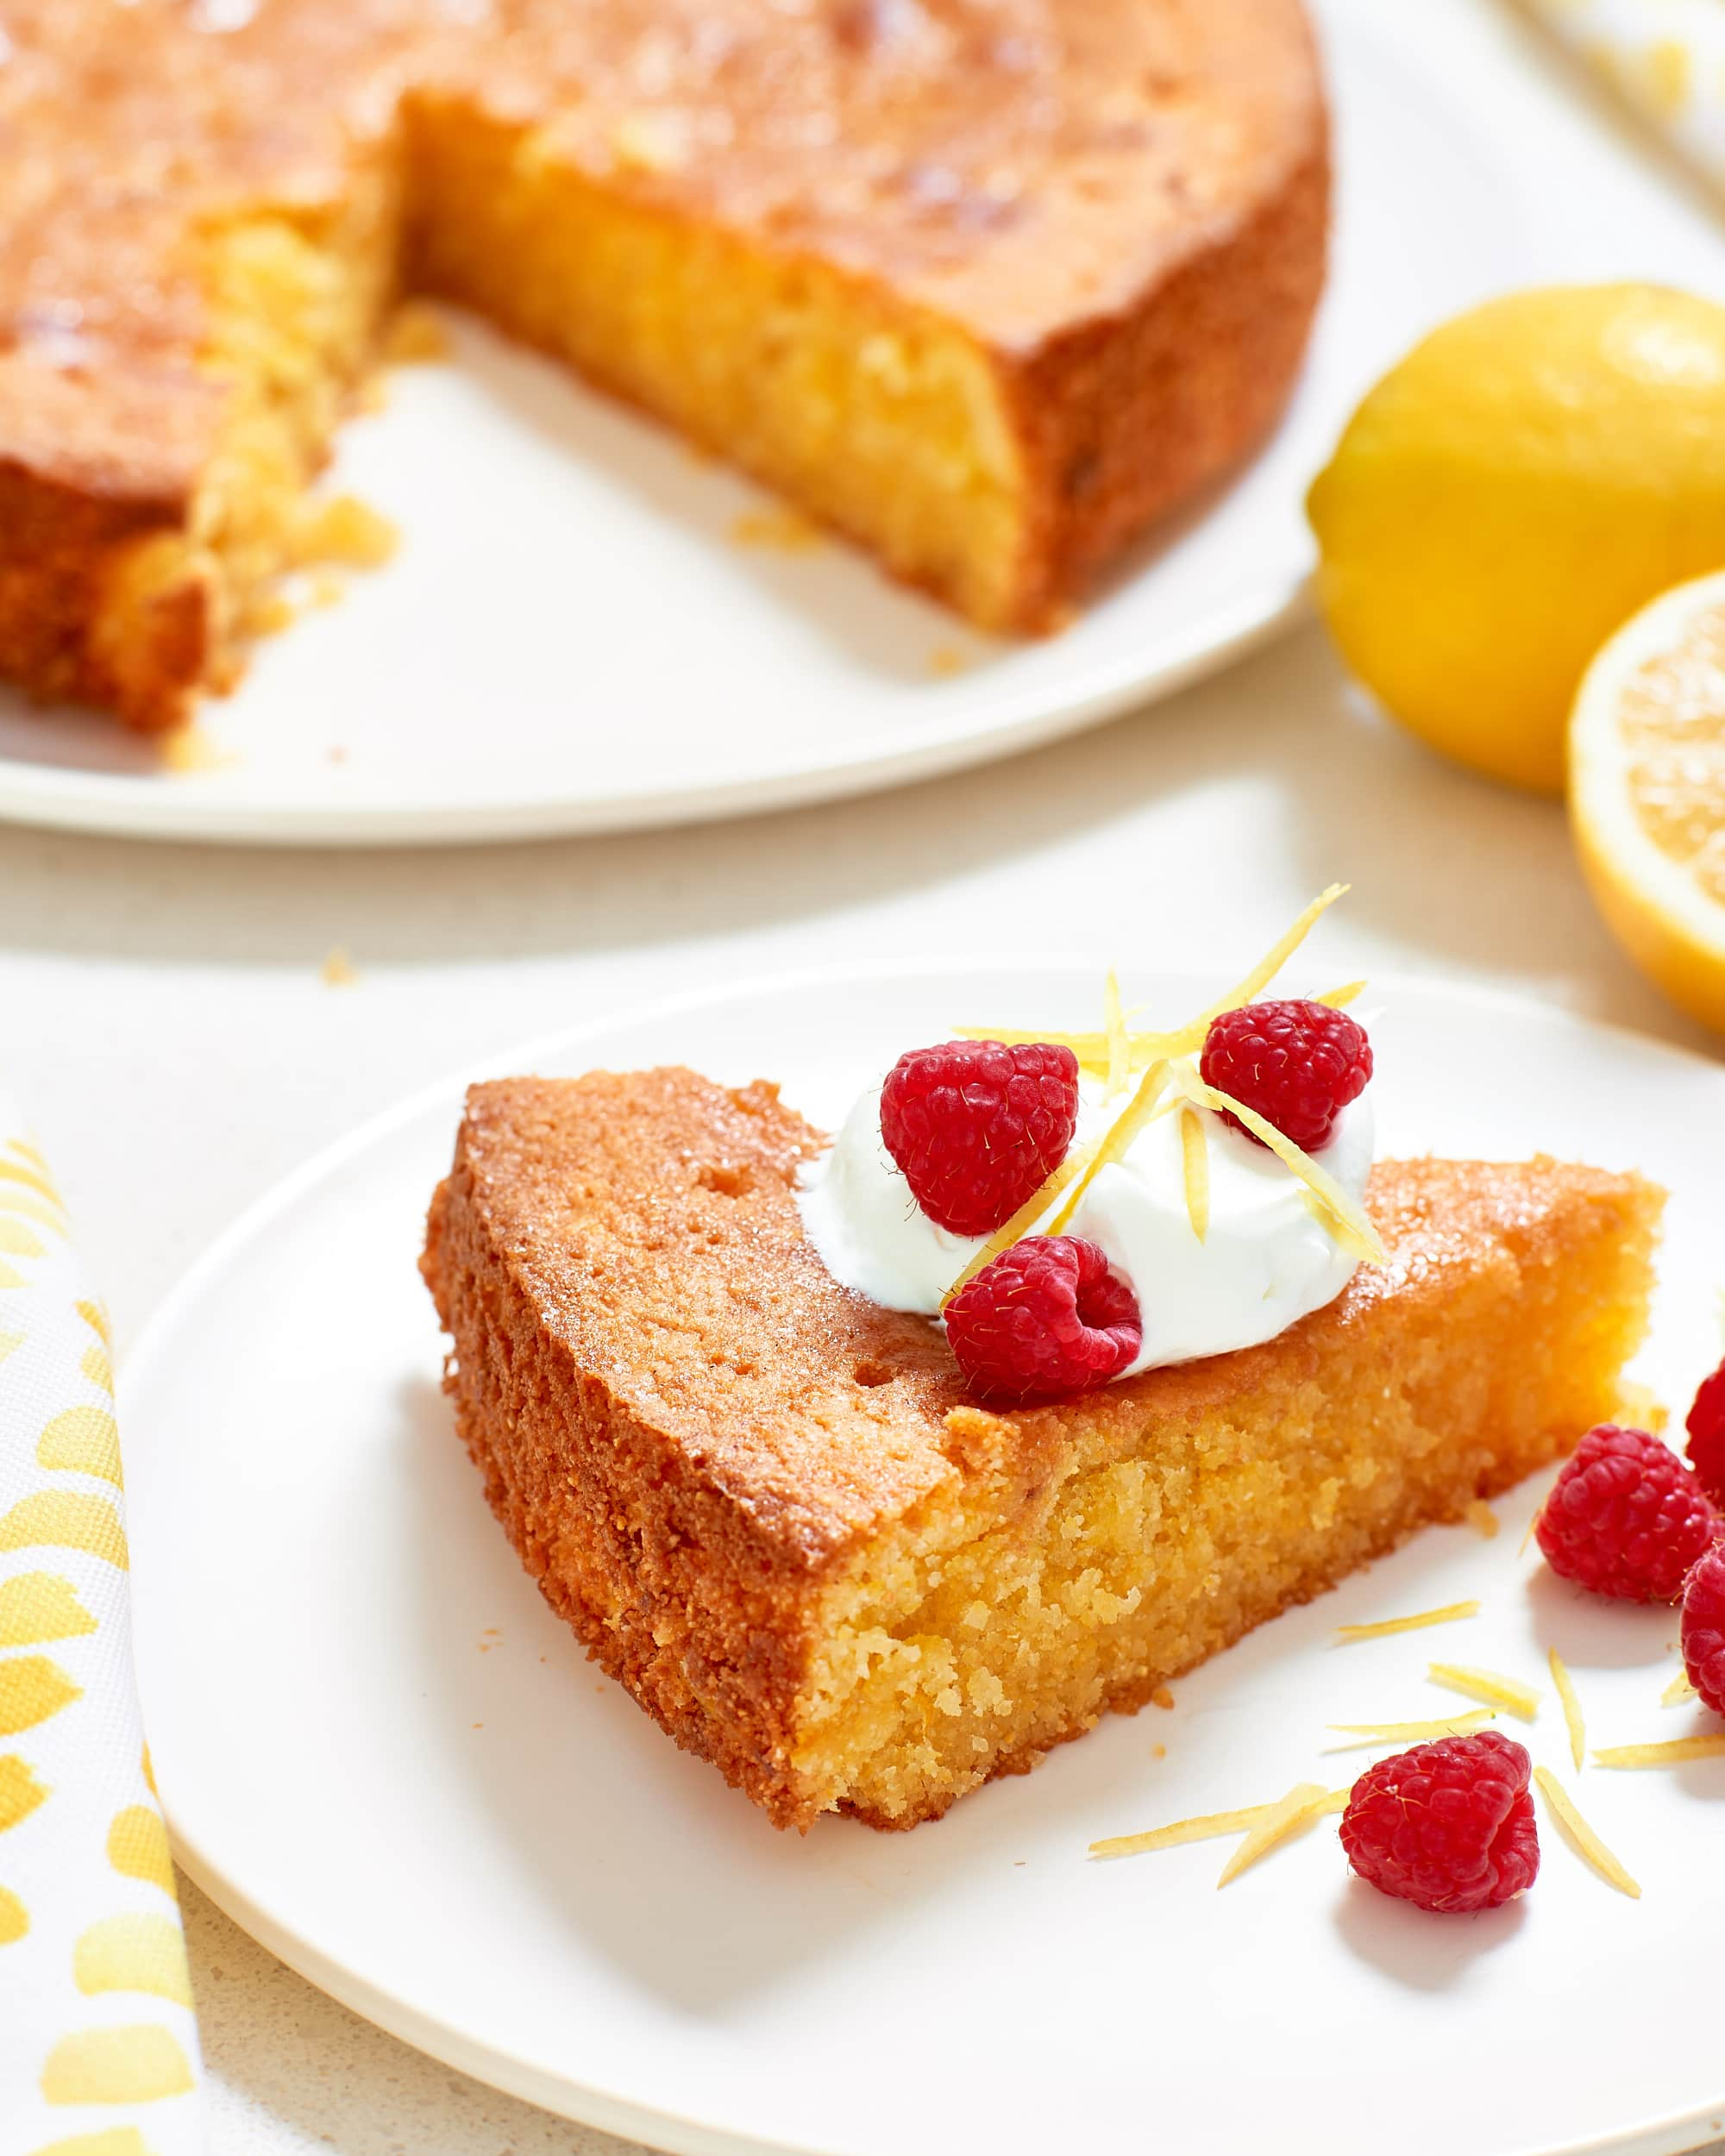 Recipe: Sticky Gluten-Free Lemon Cake